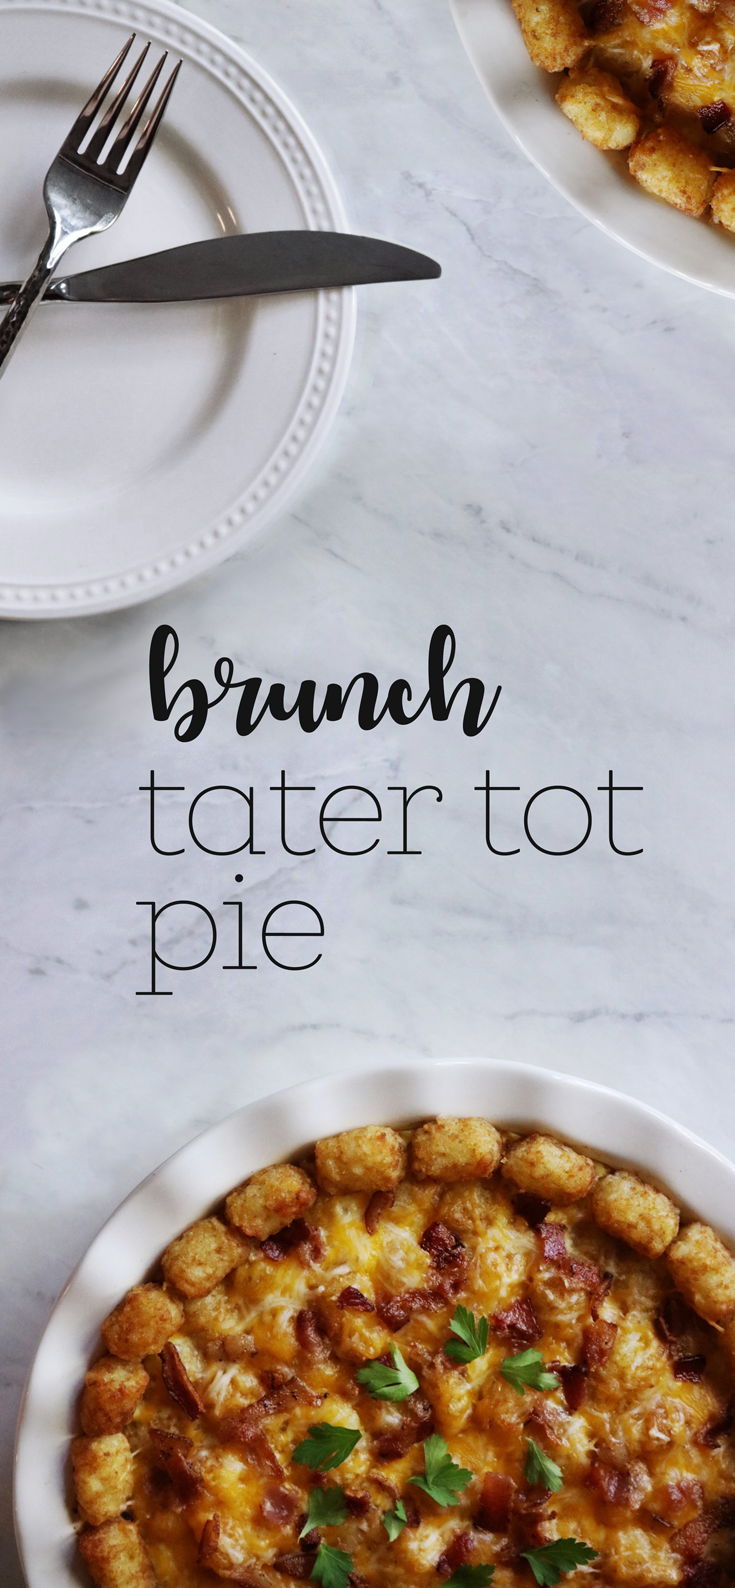 Brunch Tater Tot Pie recipe